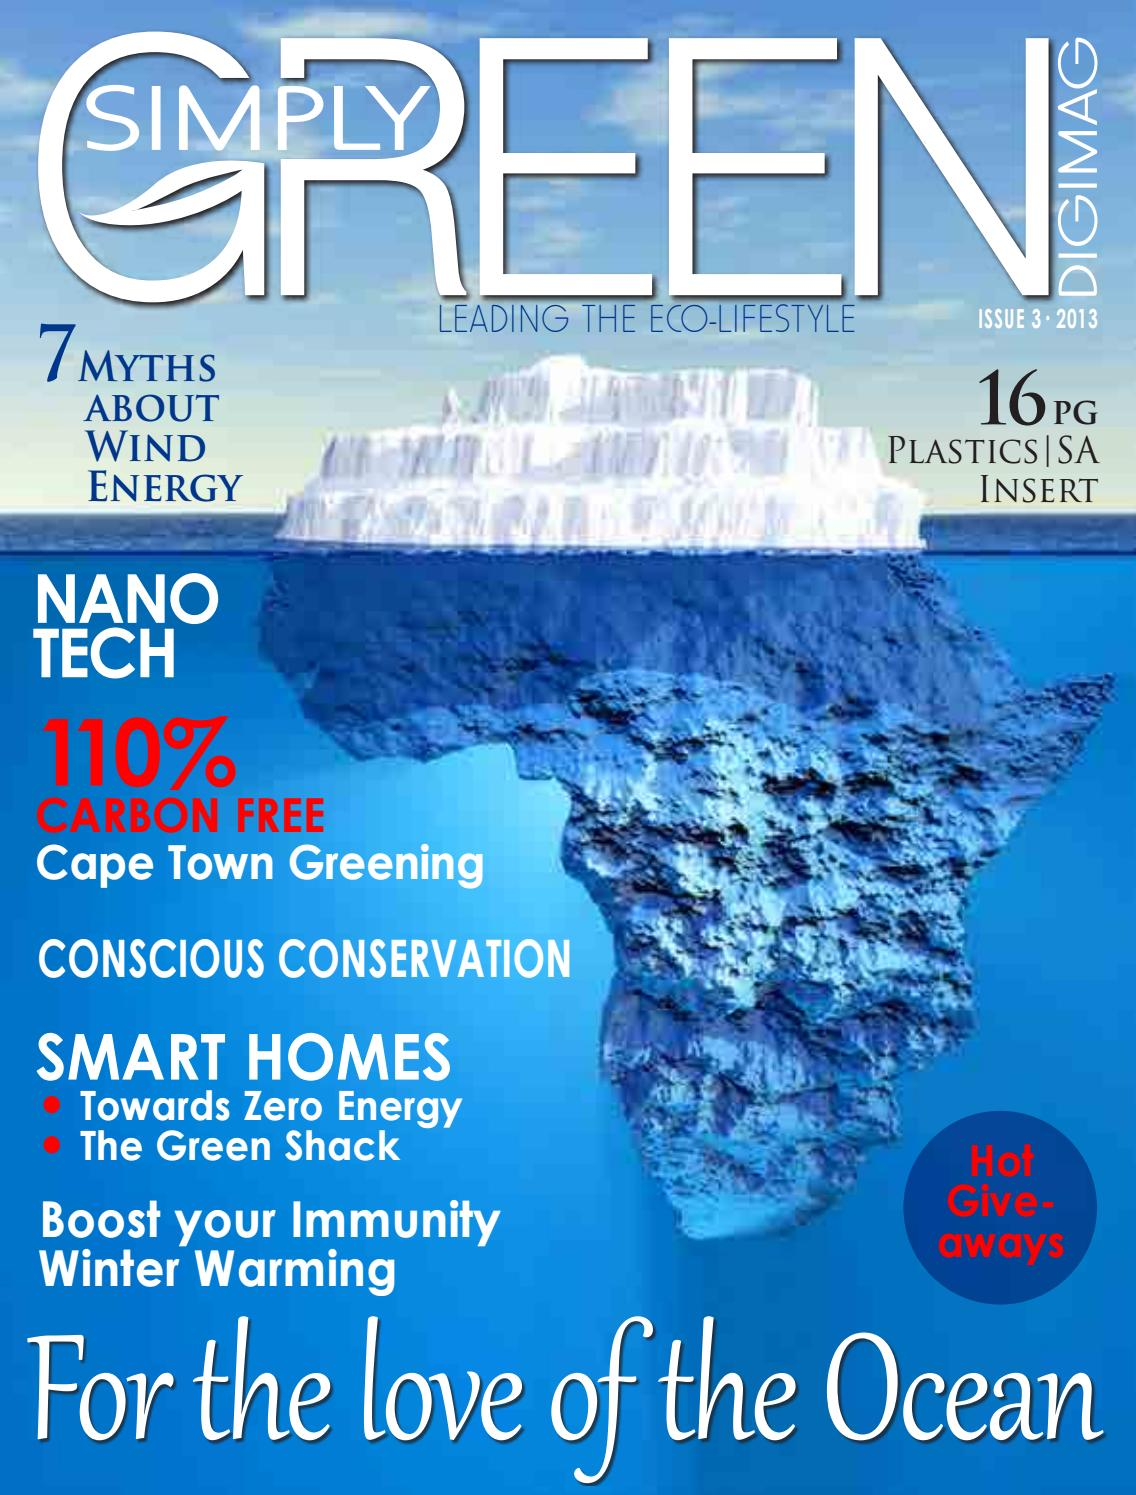 Simply Green Magazine Issue 3 2013 Lores By African News Agency Issuu